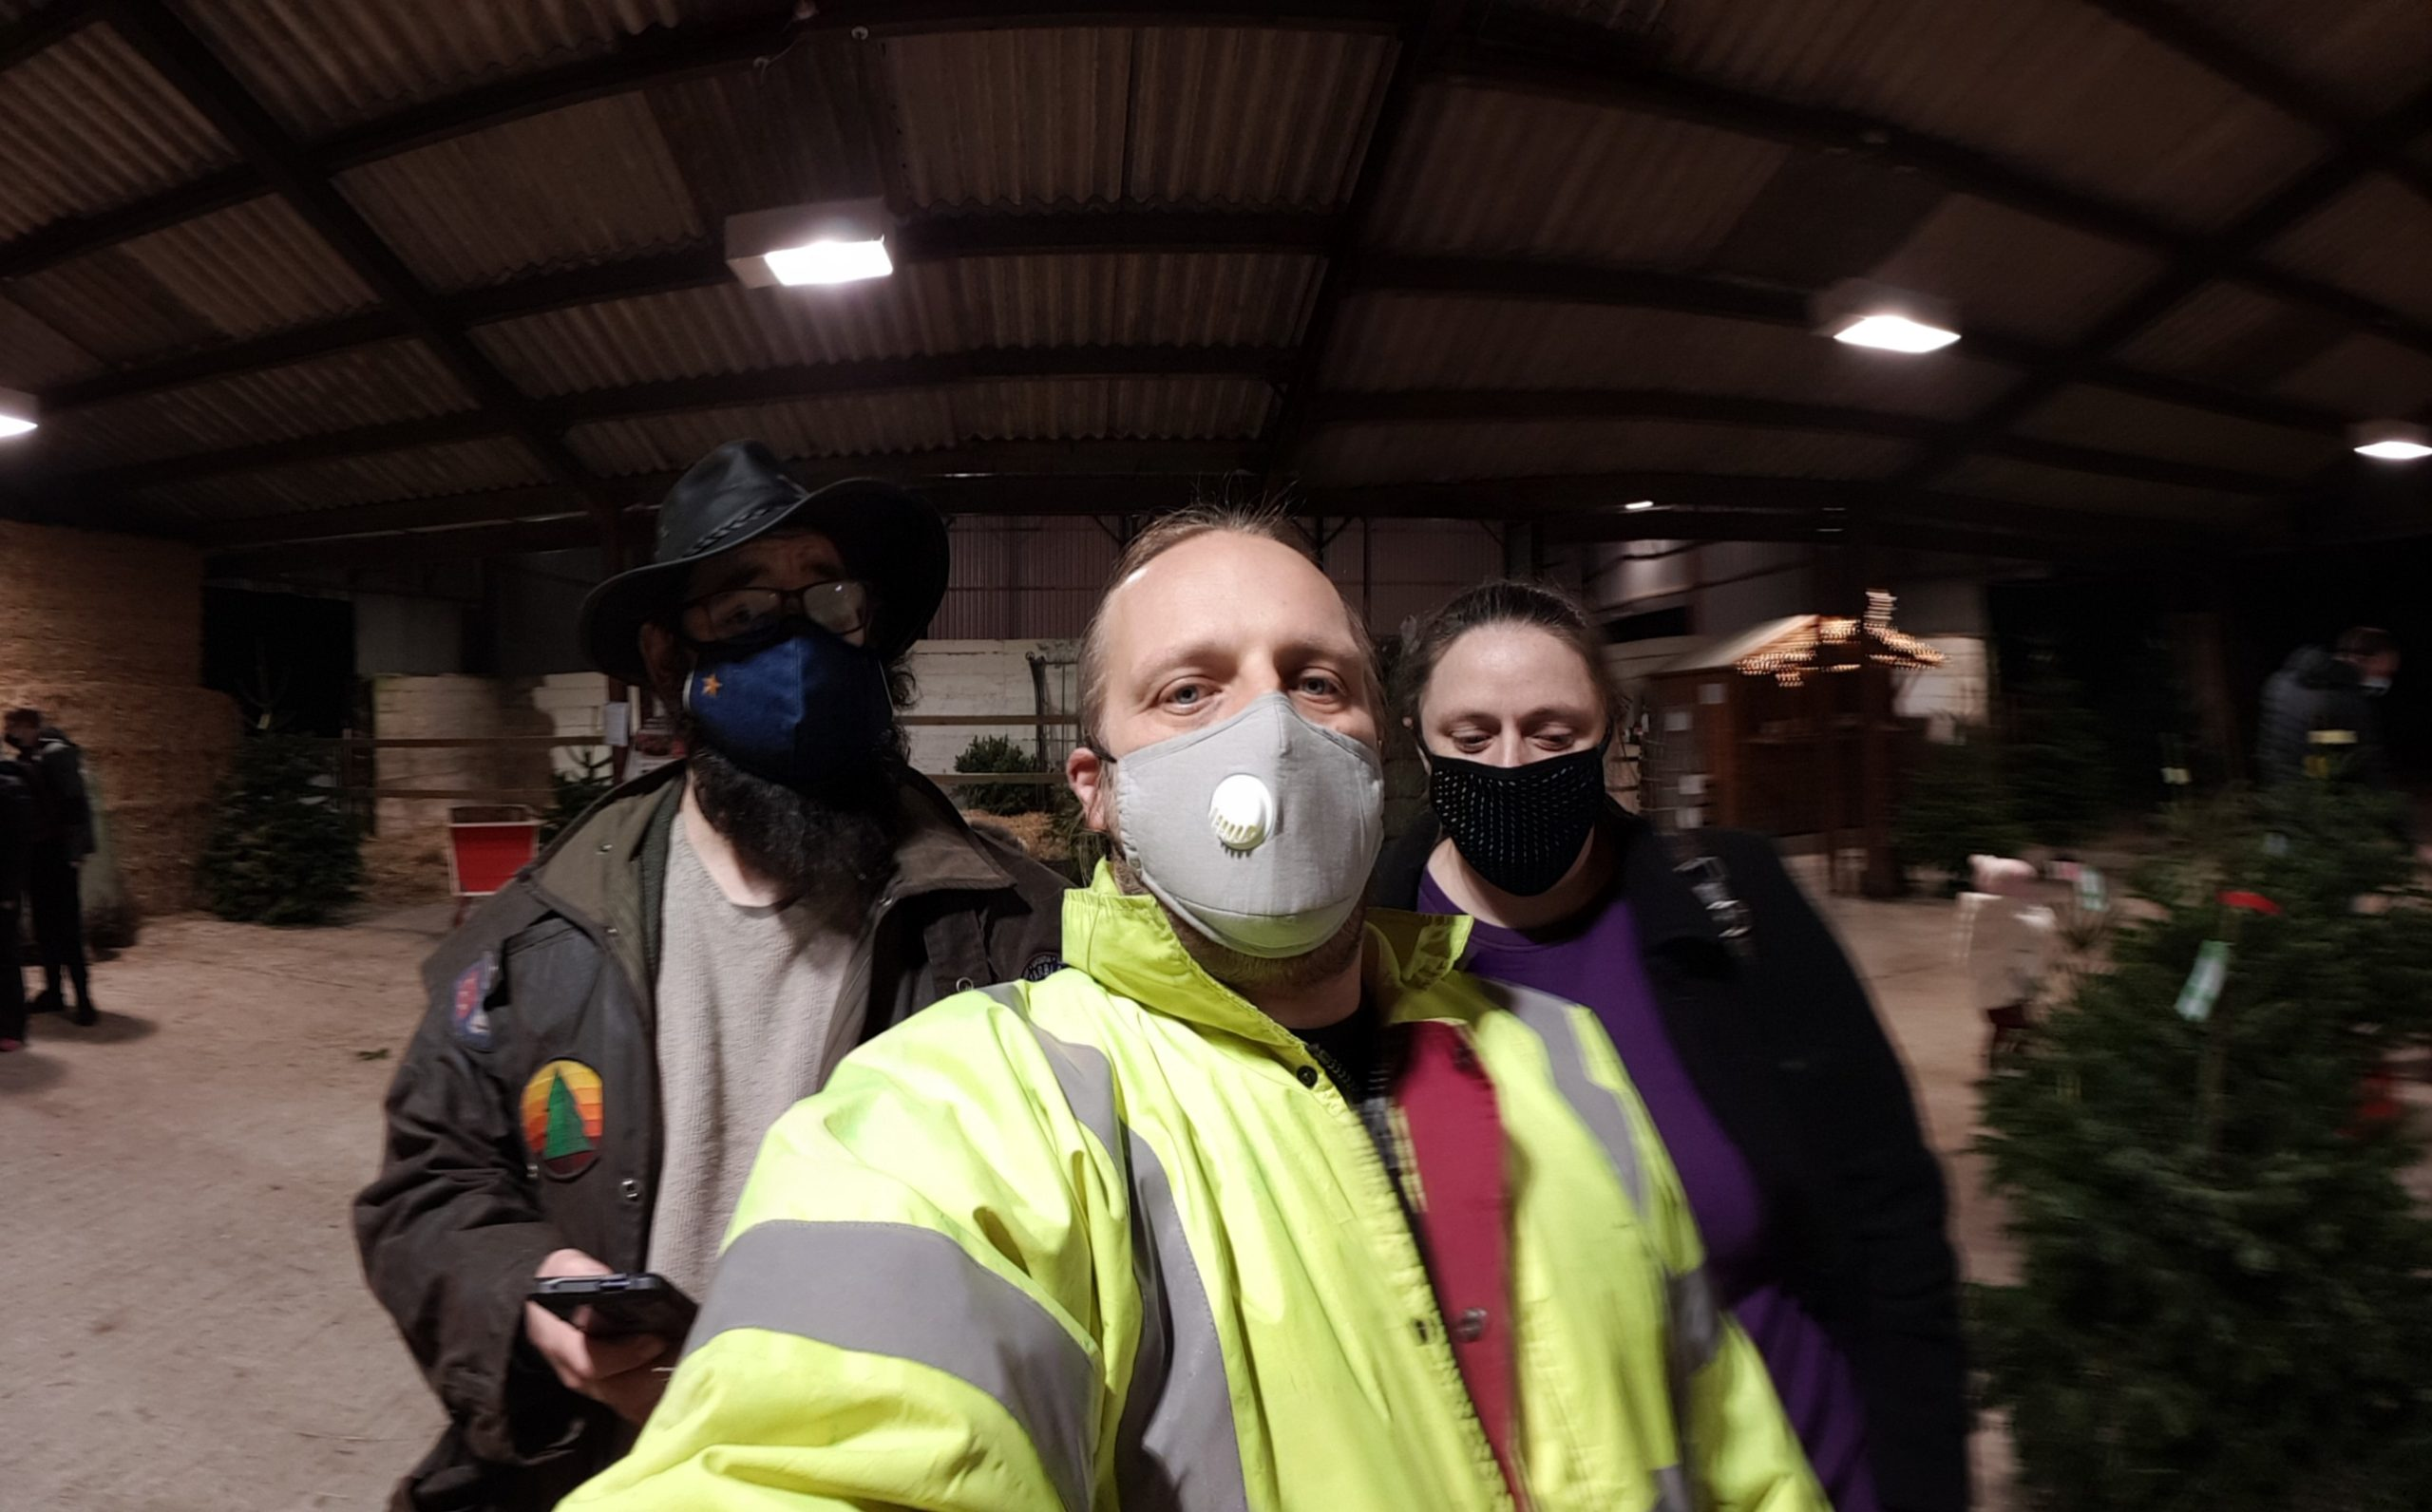 JTA, Dan and Ruth shopping for a Christmas tree, wearing face masks